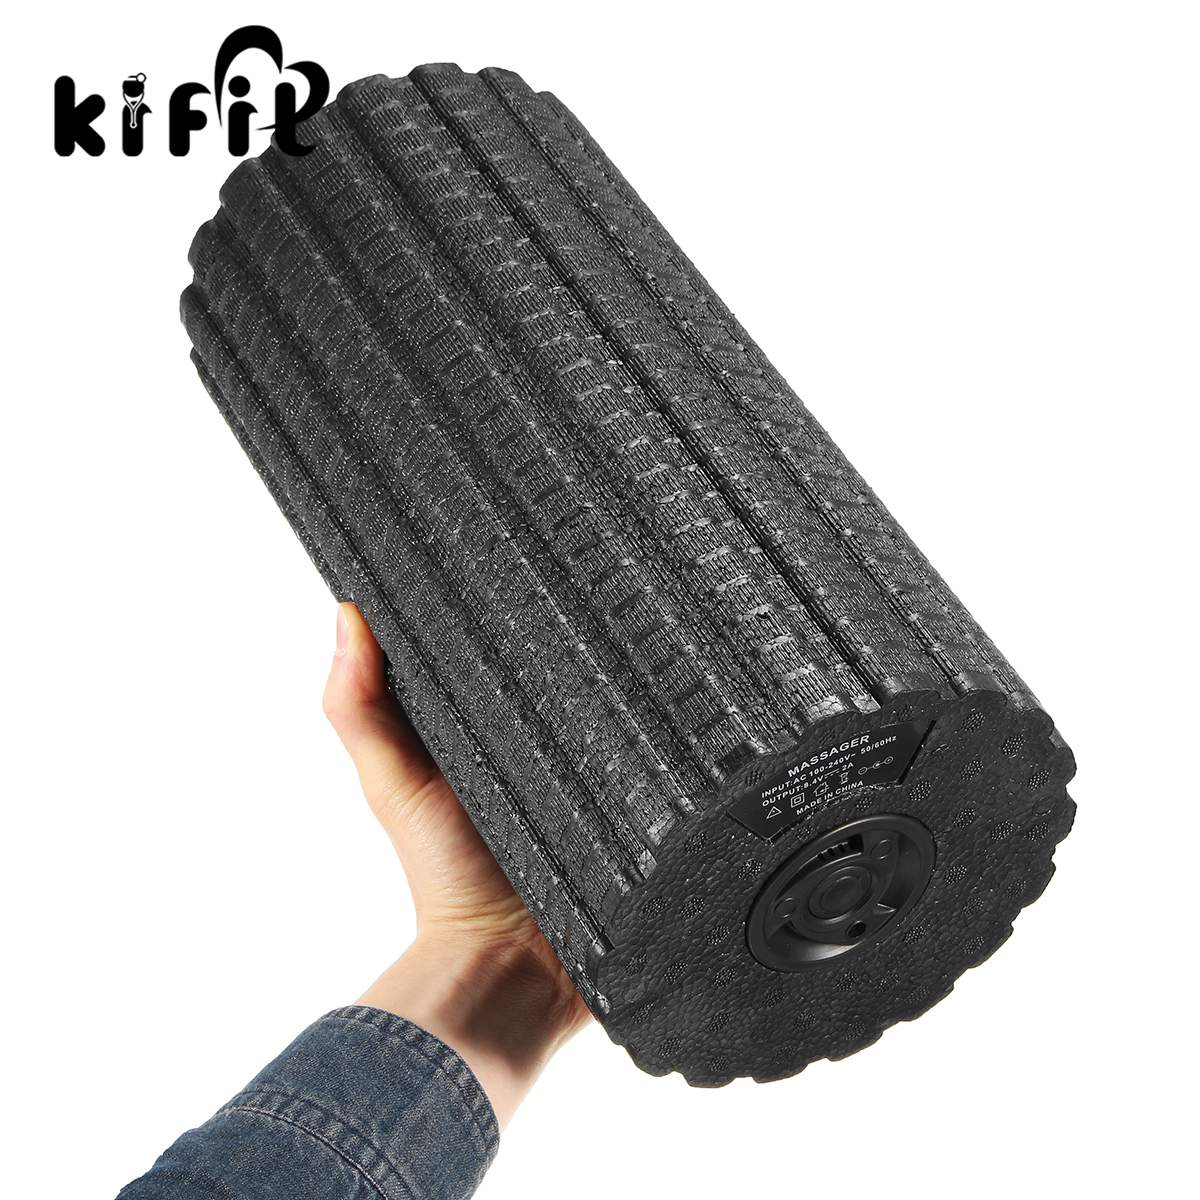 Kifit 1 pcs Fitness Roller Body Slimming Massage Roller Yoga Massage Electric Vibrator Relaxing Foam Roller Massage Electric 30cm 15cm electric vibration eva foam roller floating point fitness massage roller 3 speed adjustable for physical therapy